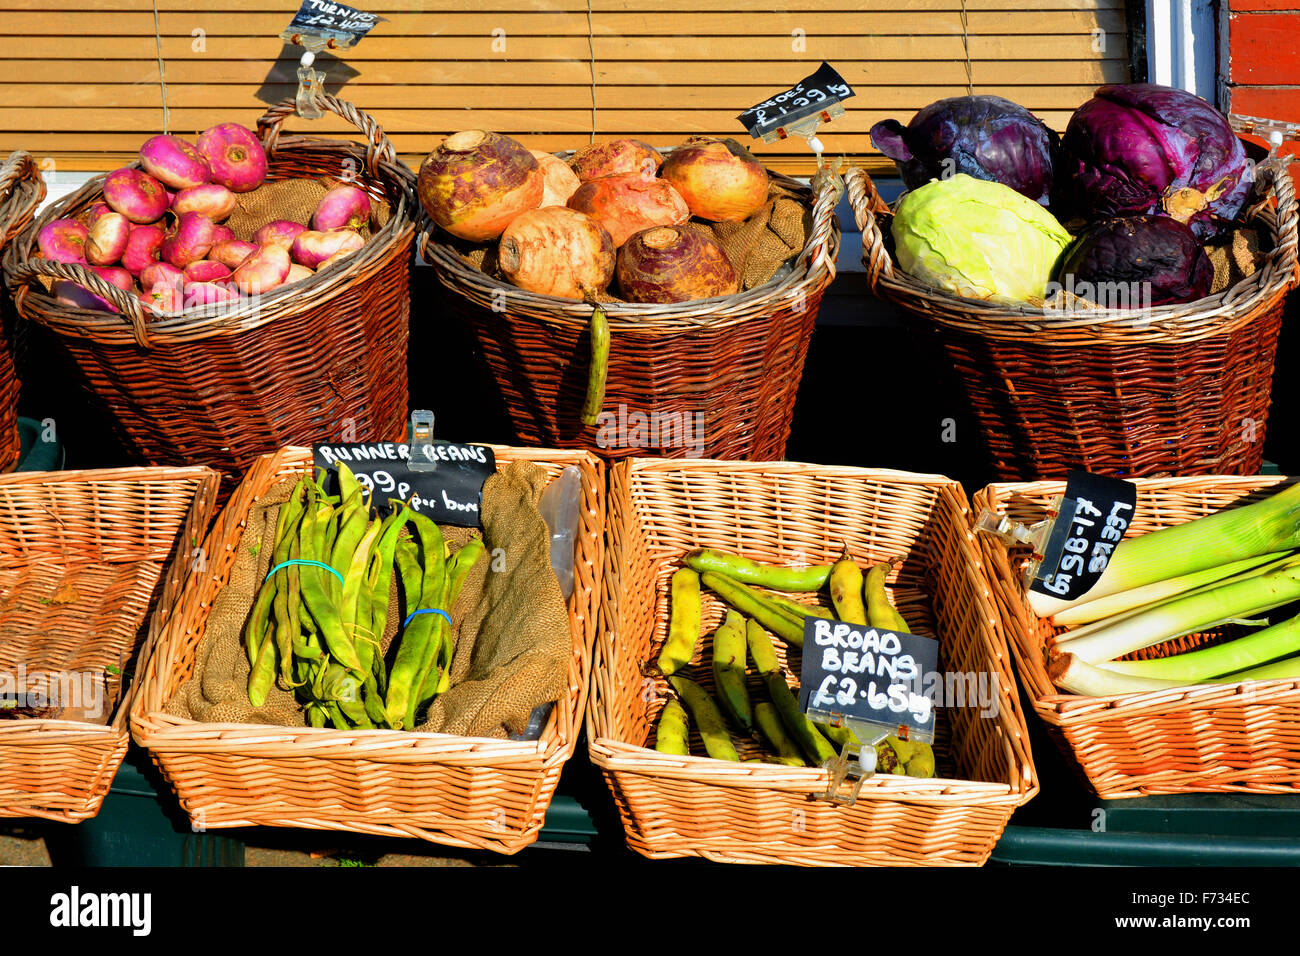 A lovely, outside shop display of good quality produce in Rhos-on-Sea in North Wales. - Stock Image